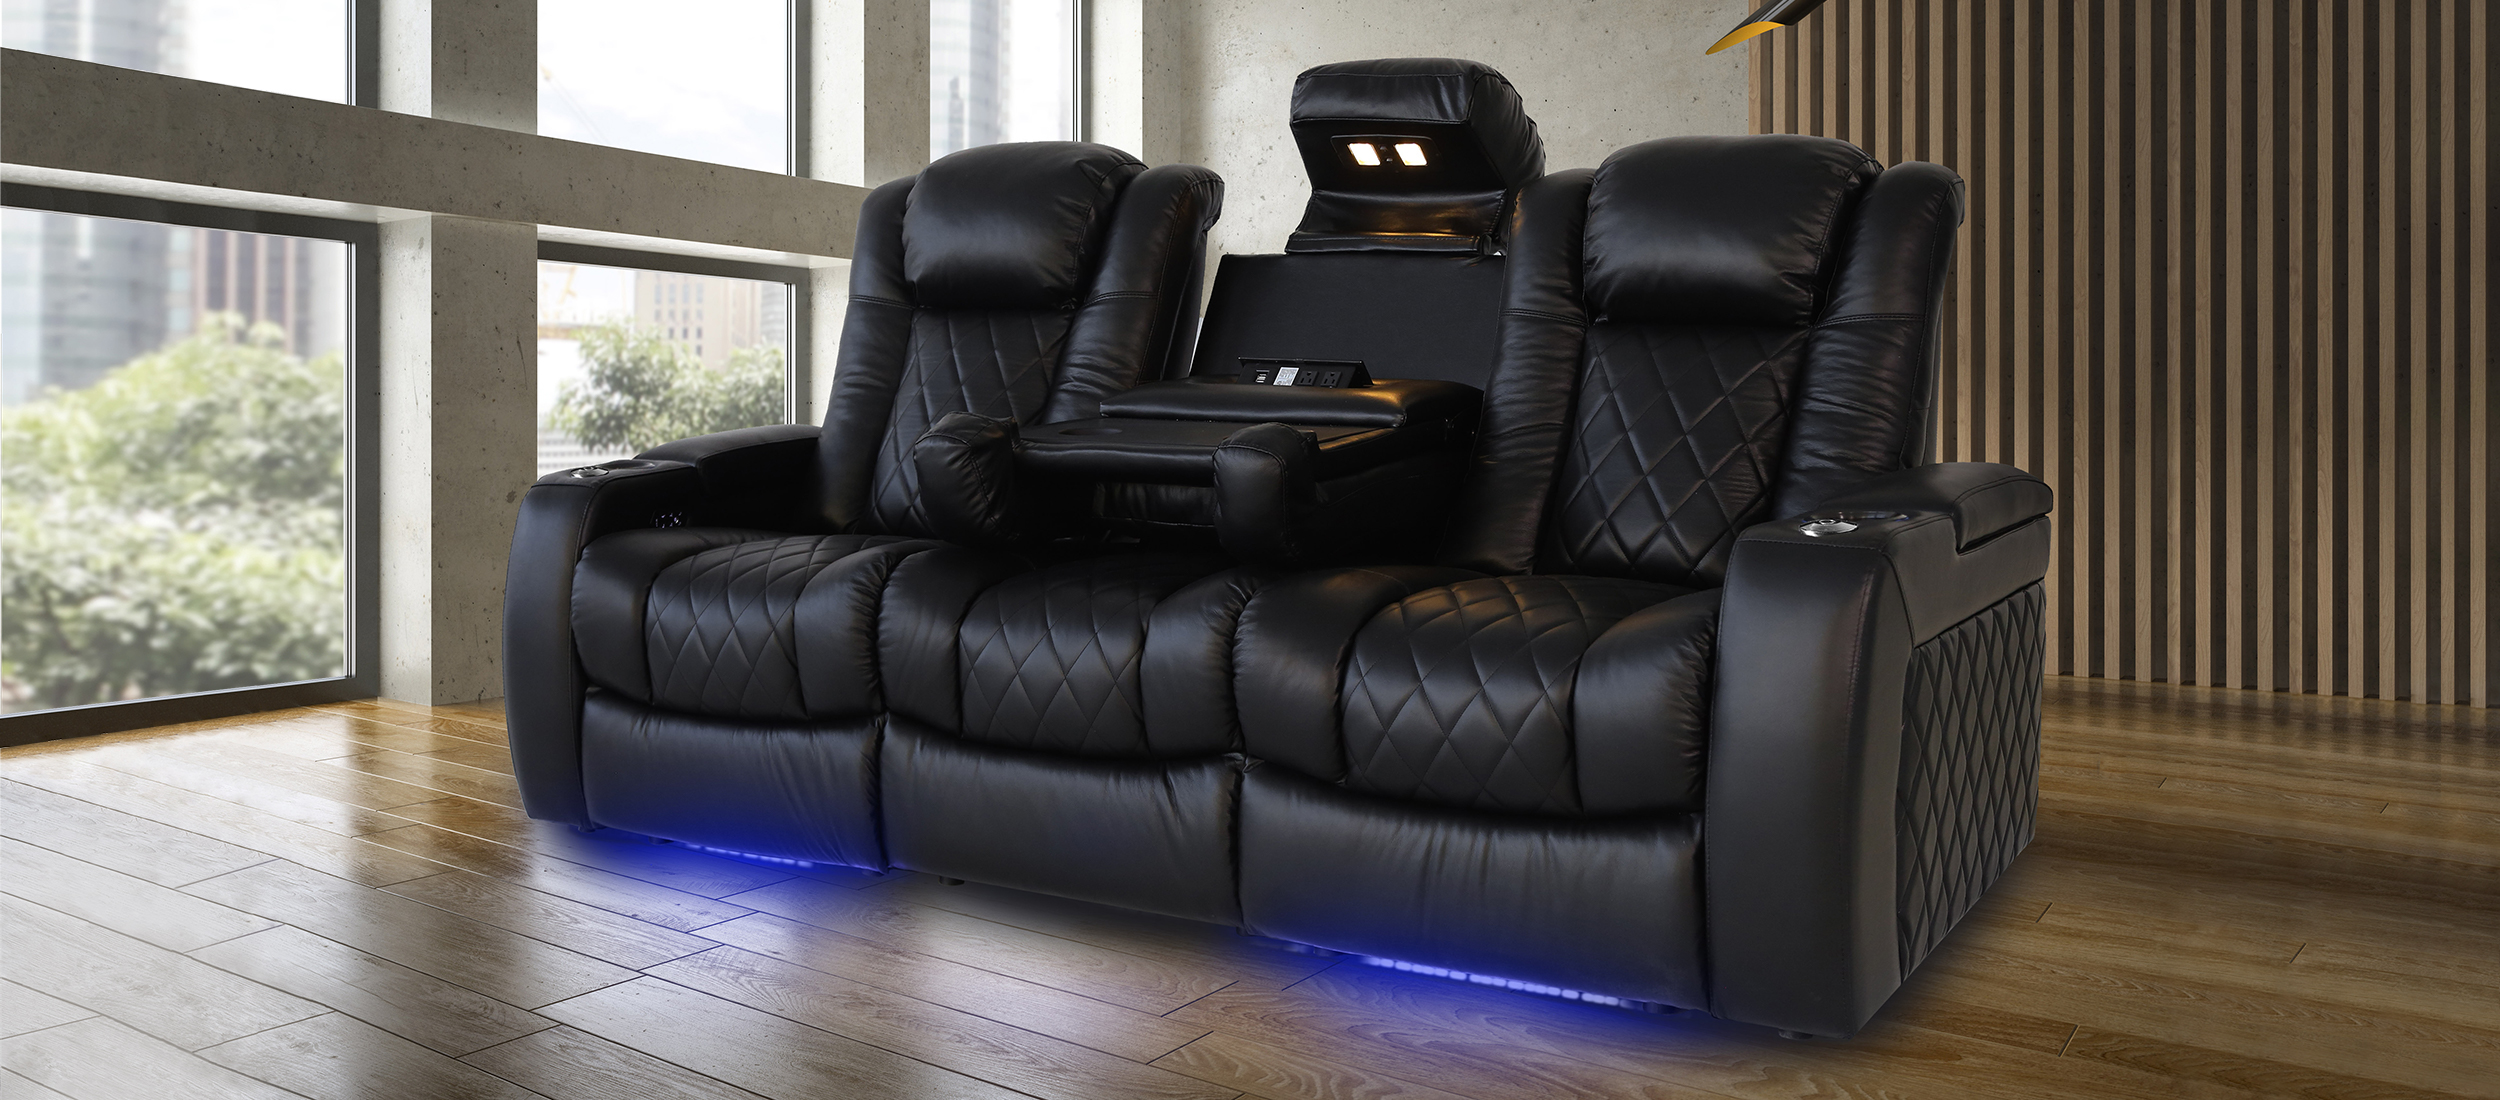 Tuscany Console Home Theater Seating